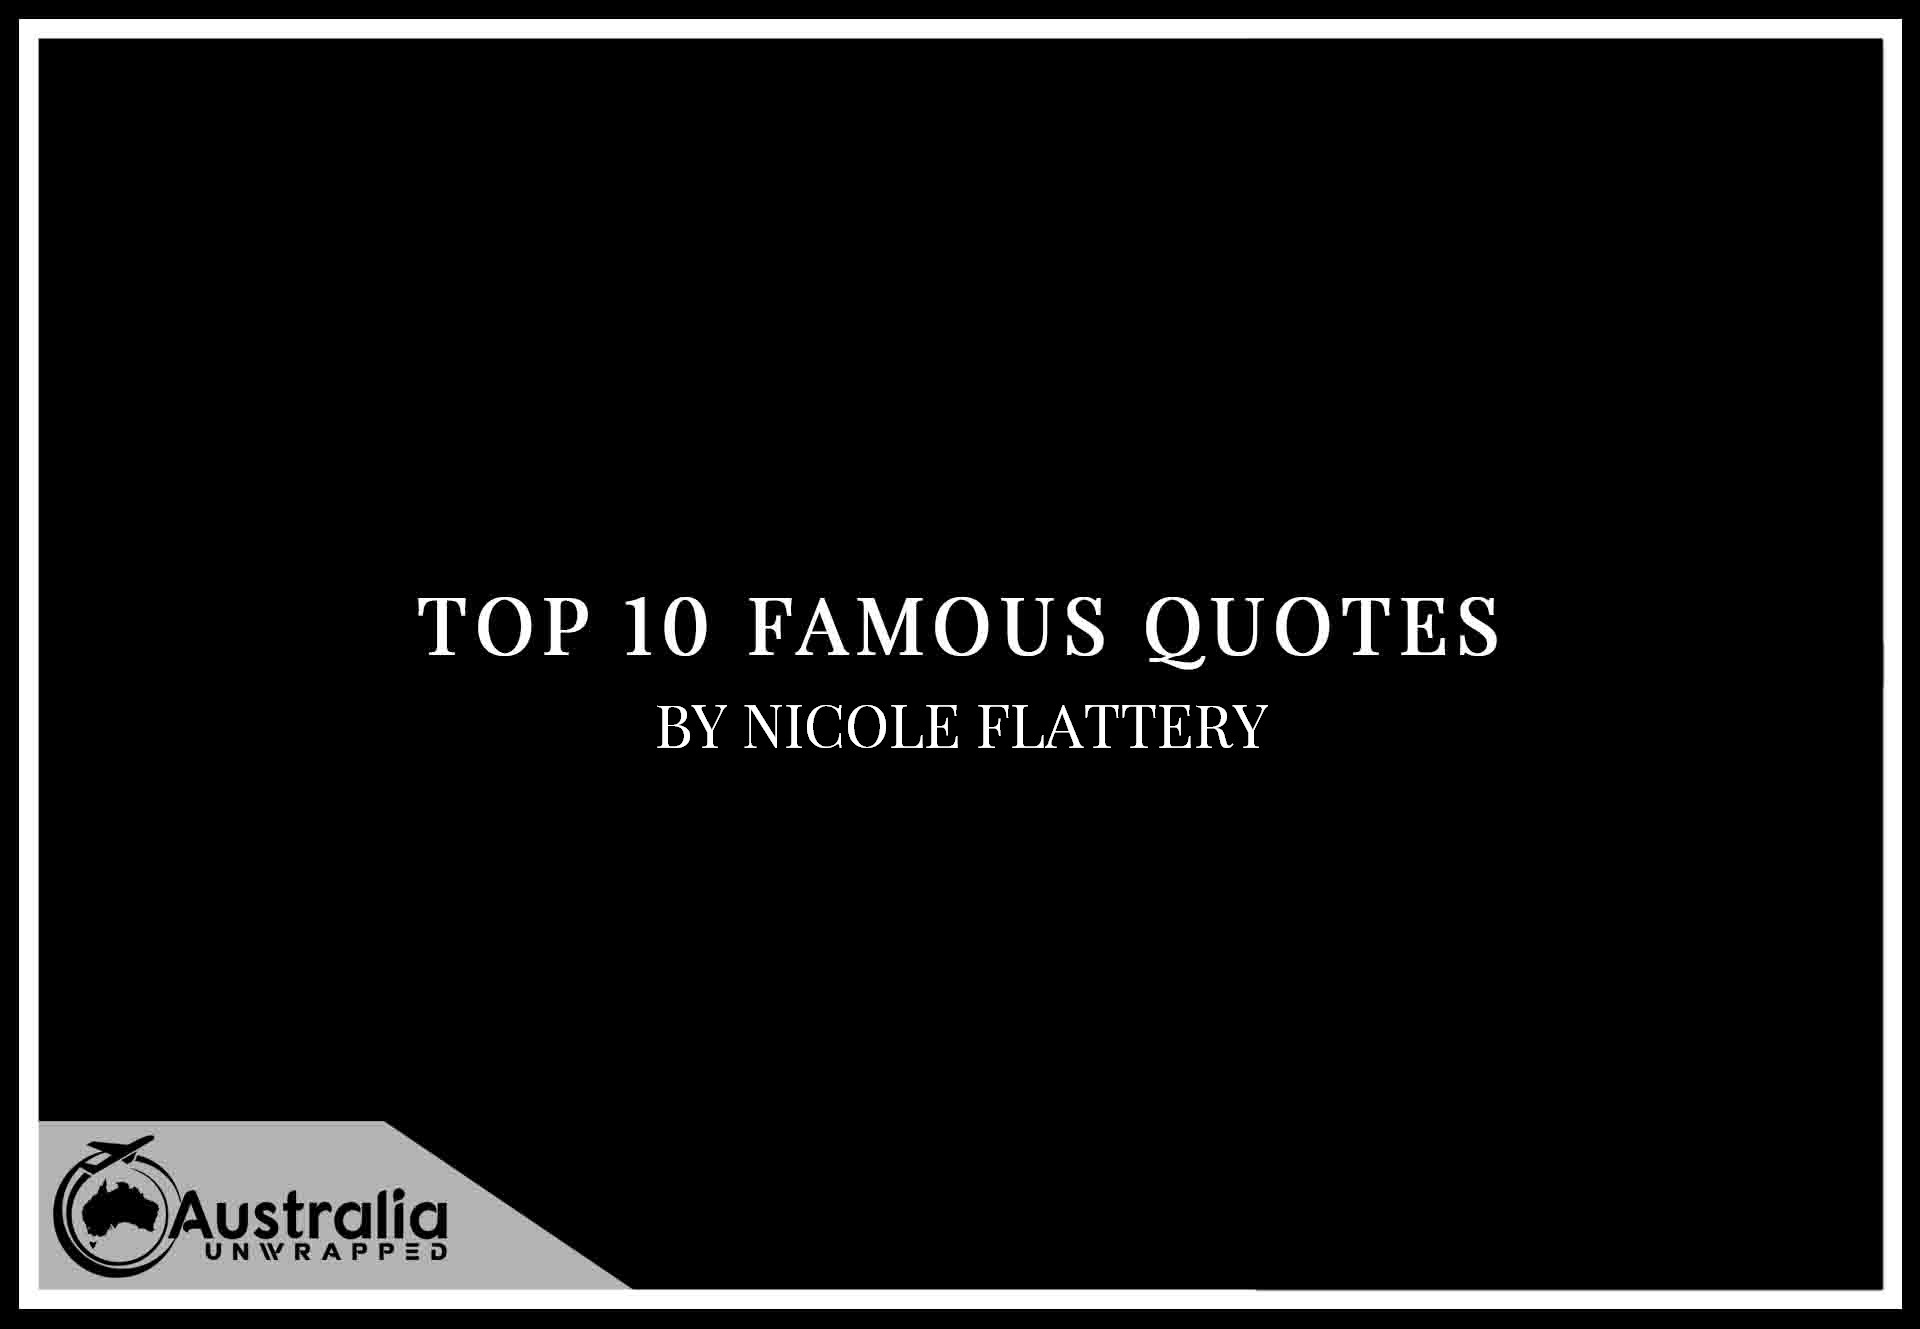 Top 10 Famous Quotes by Author Nicole Flattery